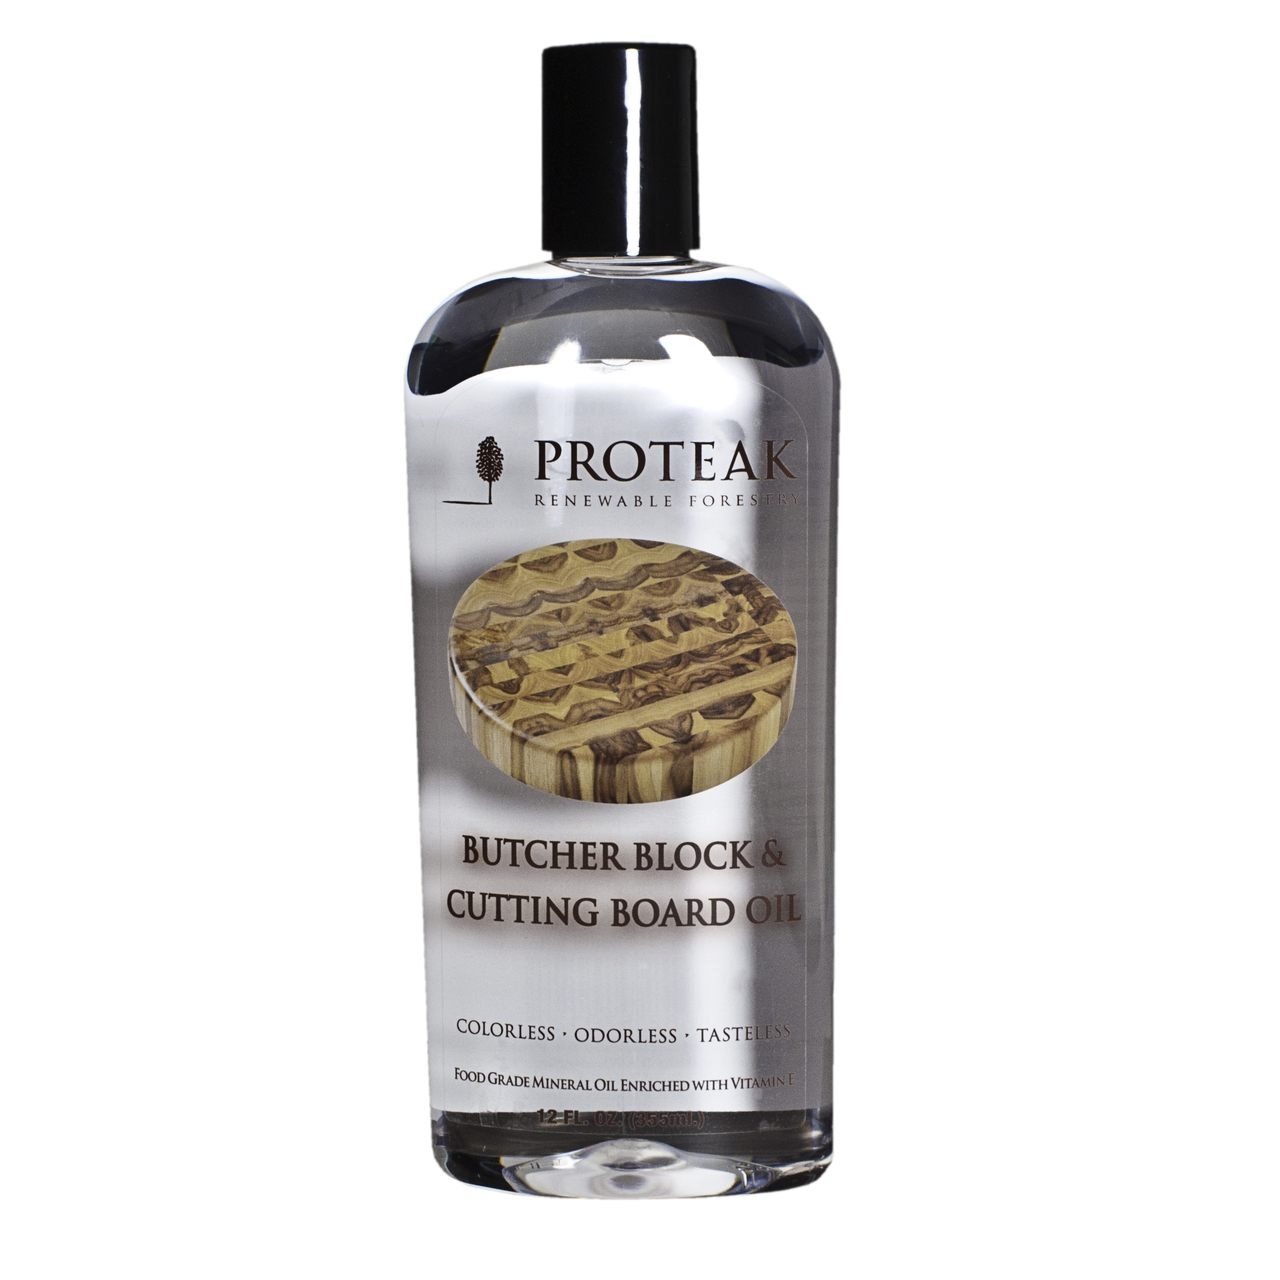 Proteak Butcher Block & Cutting Board Oil - Three 12 oz. bottles